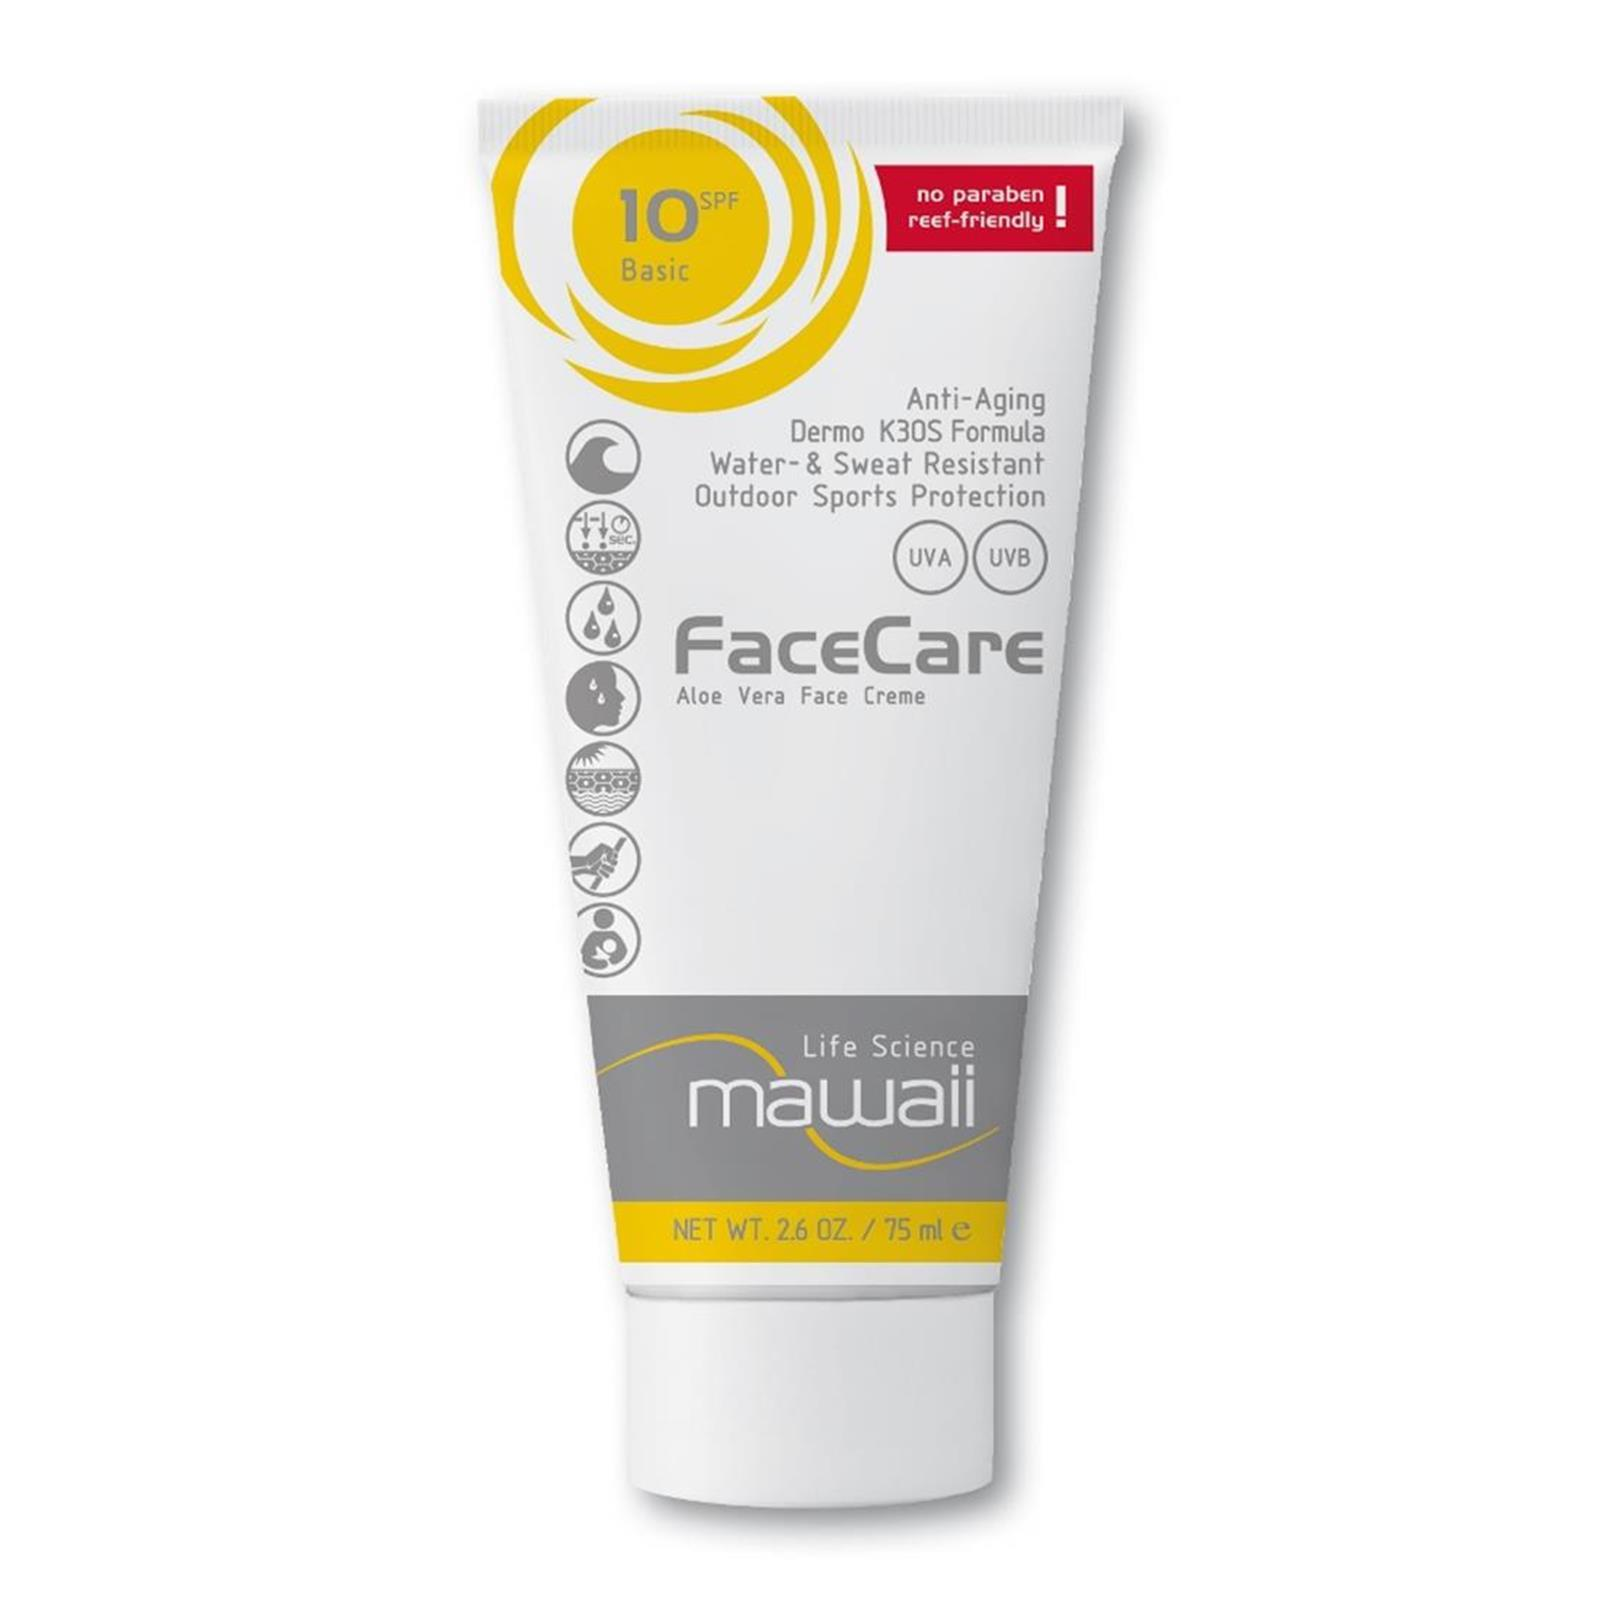 mawaii FaceCare SPF 10  K3OS Formula 75ml